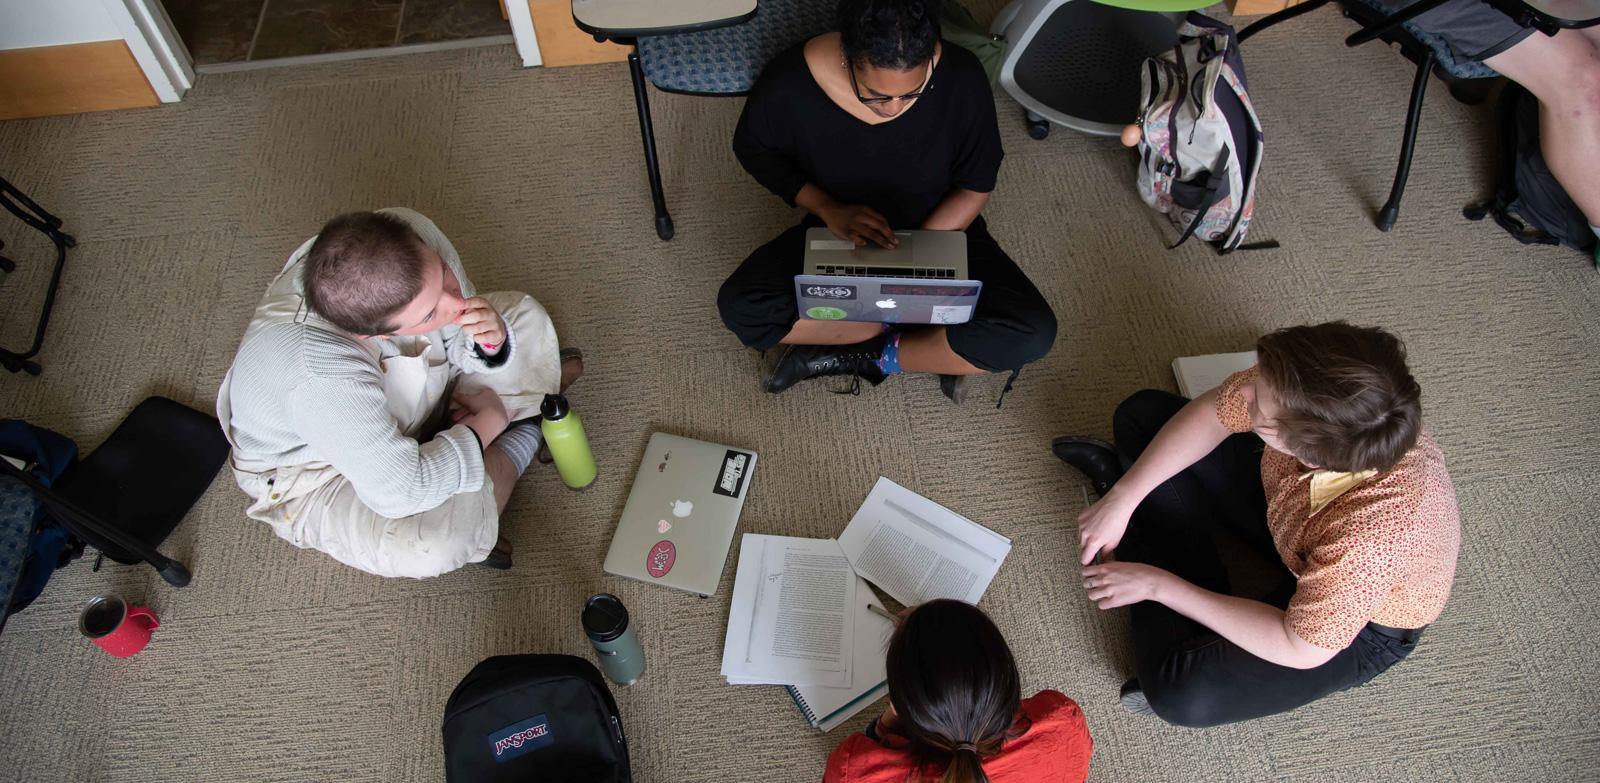 Four students sit together on the floor, working on a group project. Viewed looking down from above.